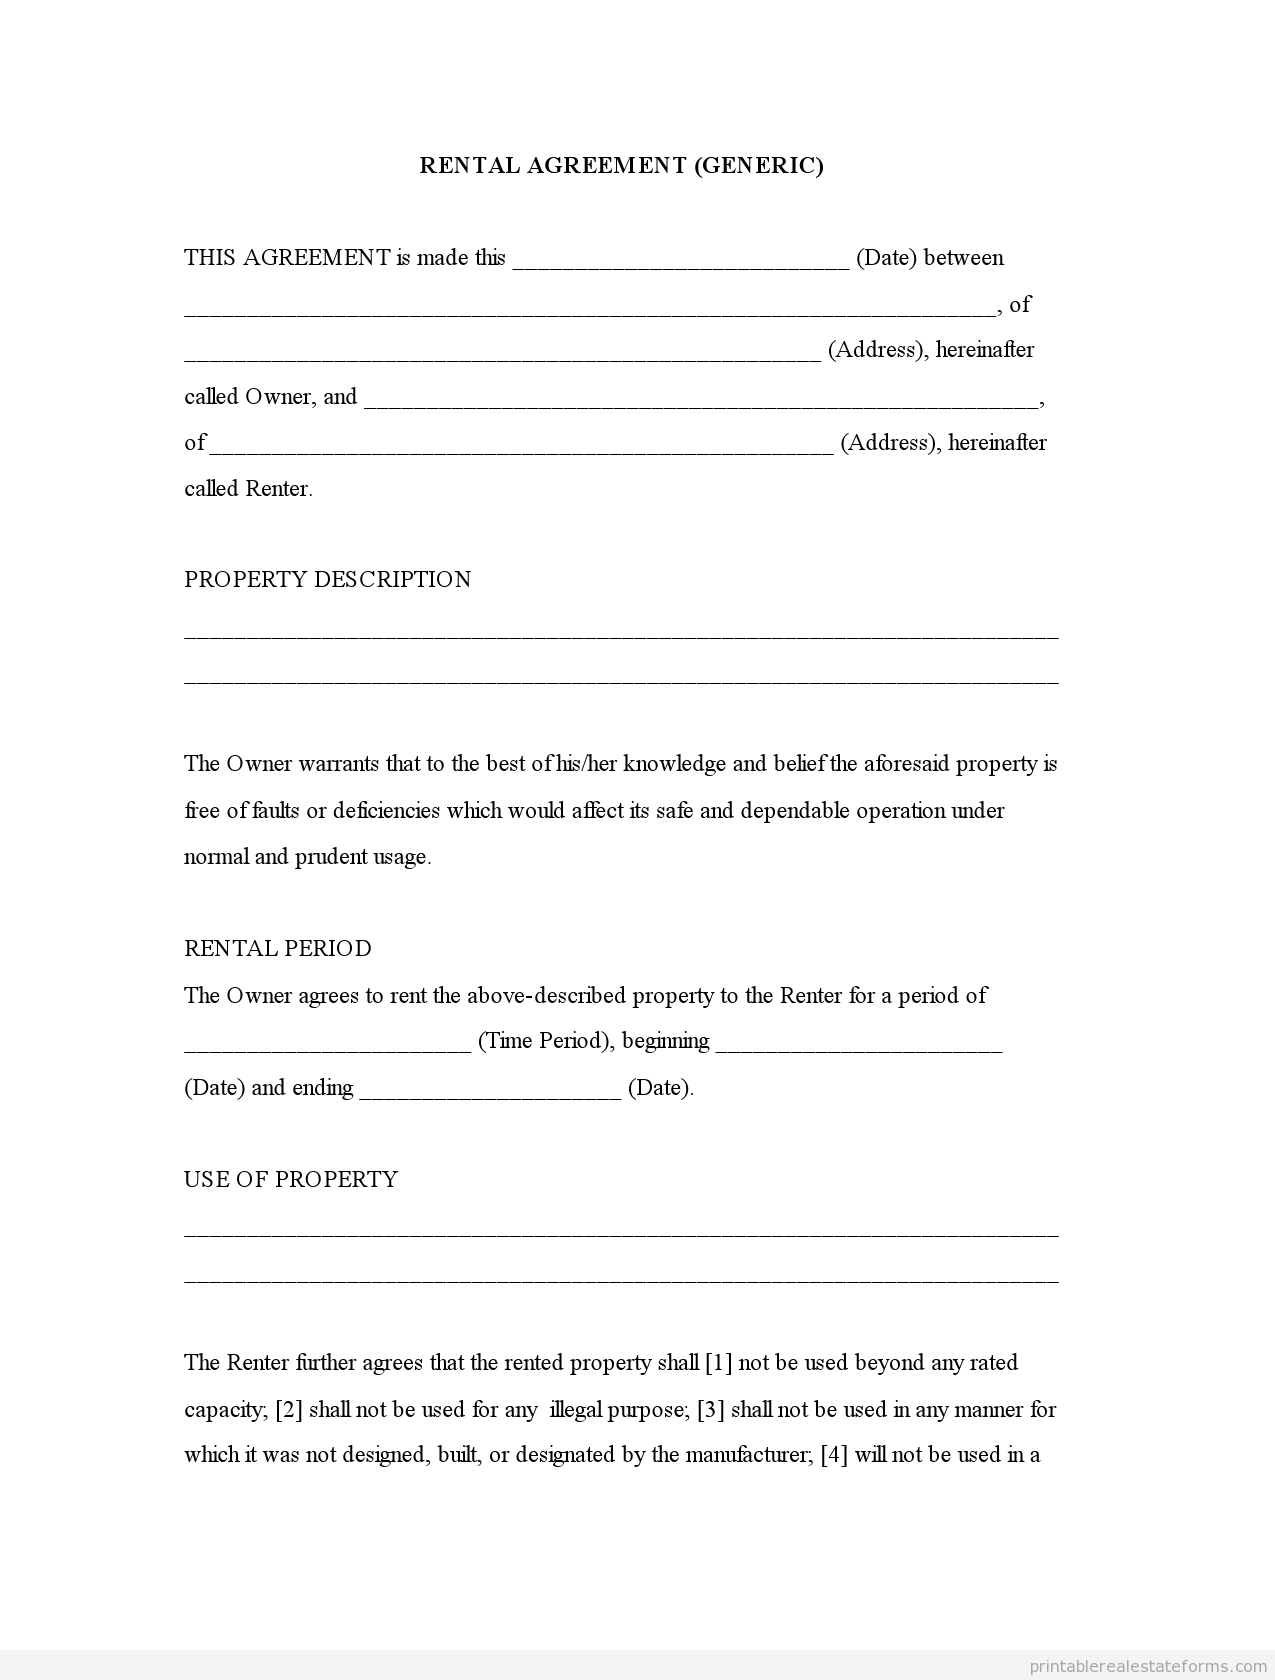 Free Printable Rental Agreement | Rental Agreement (Generic)0001 - Rental Agreement Forms Free Printable